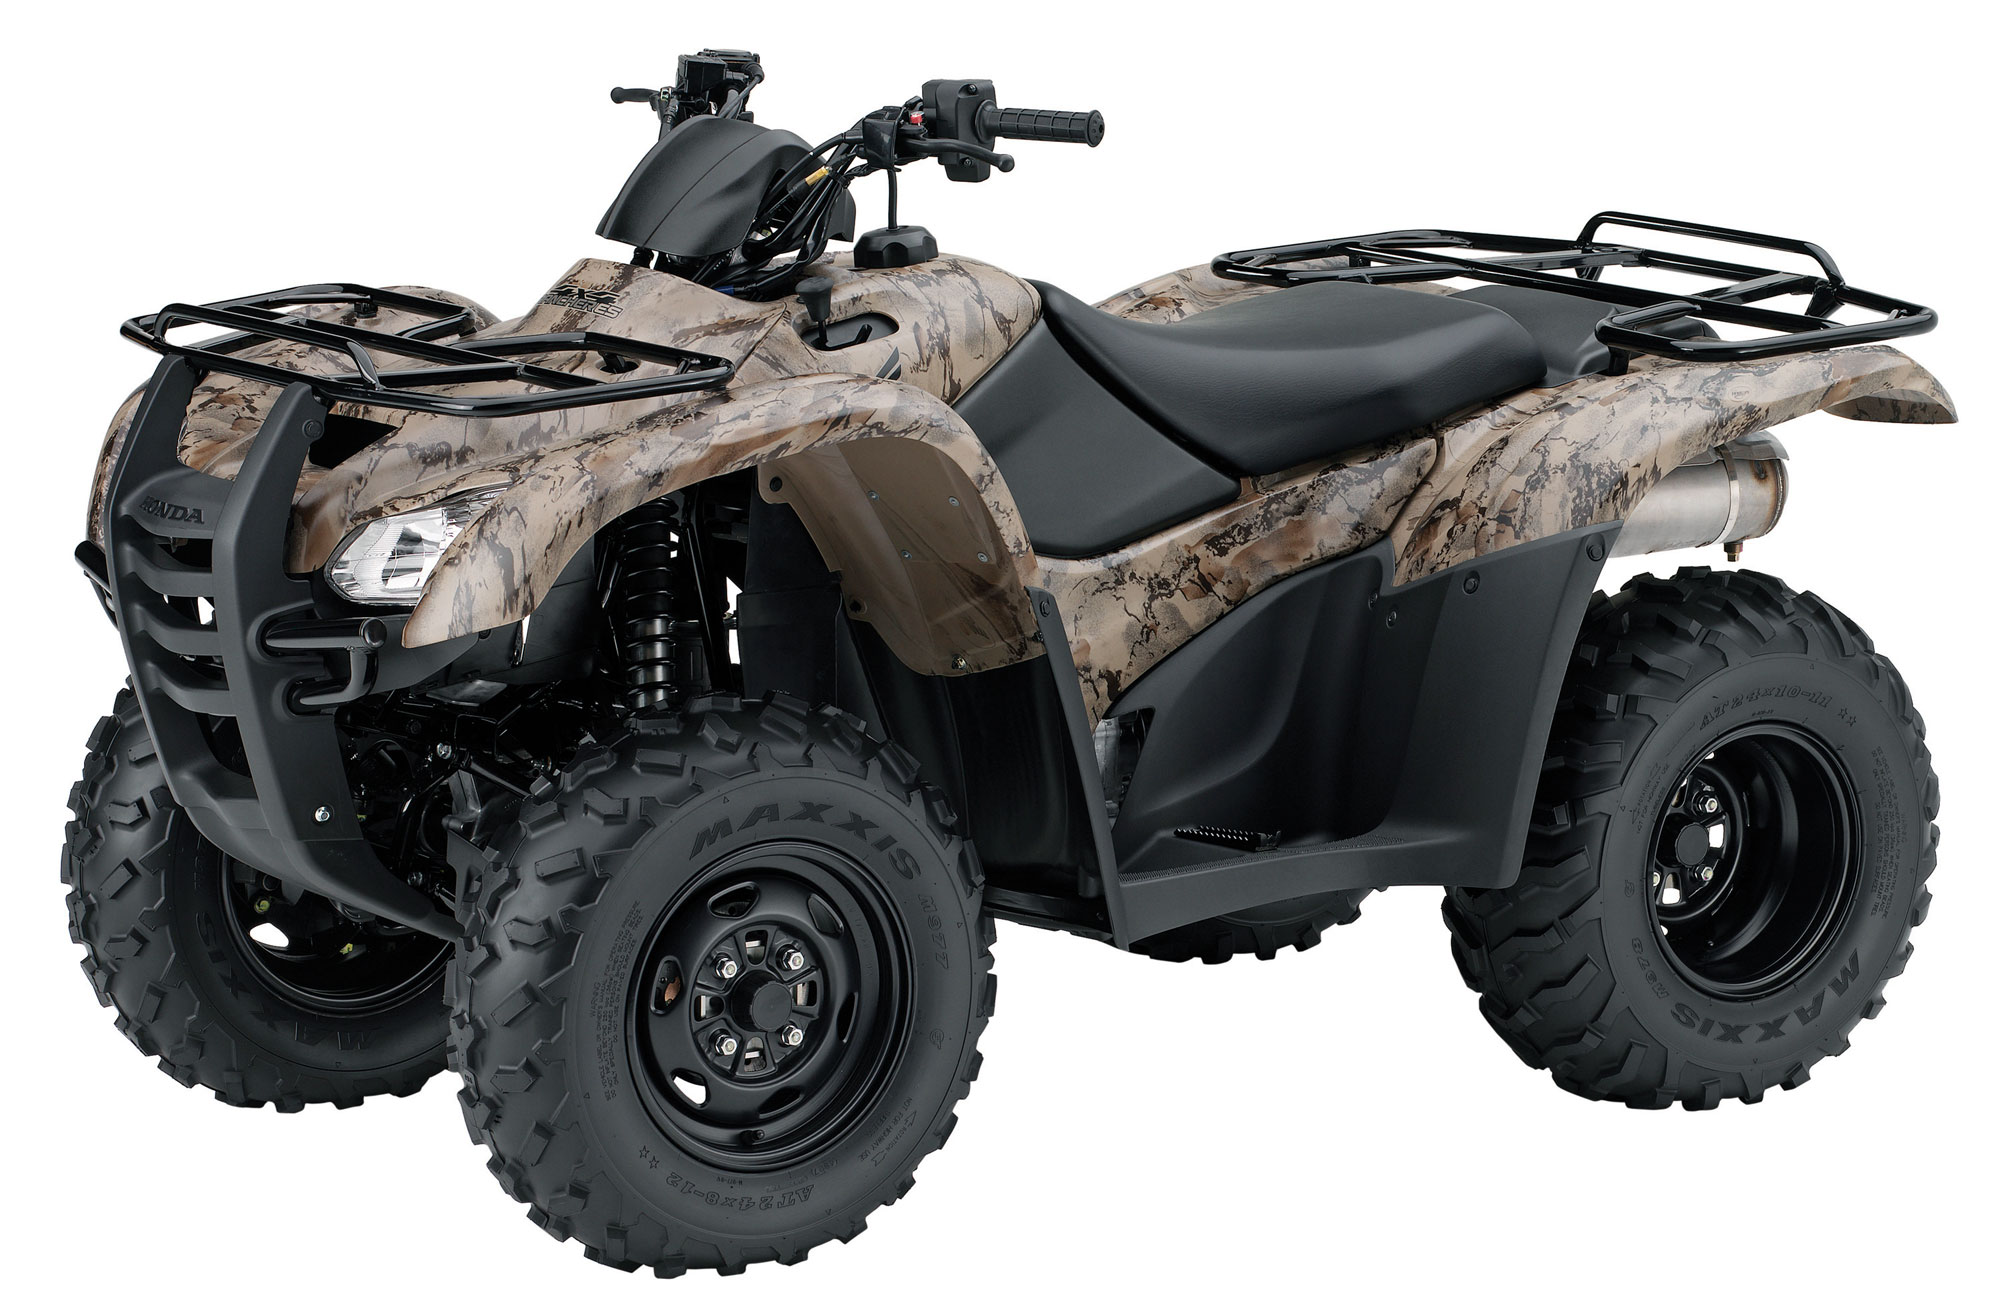 2013 honda rancher 420 review